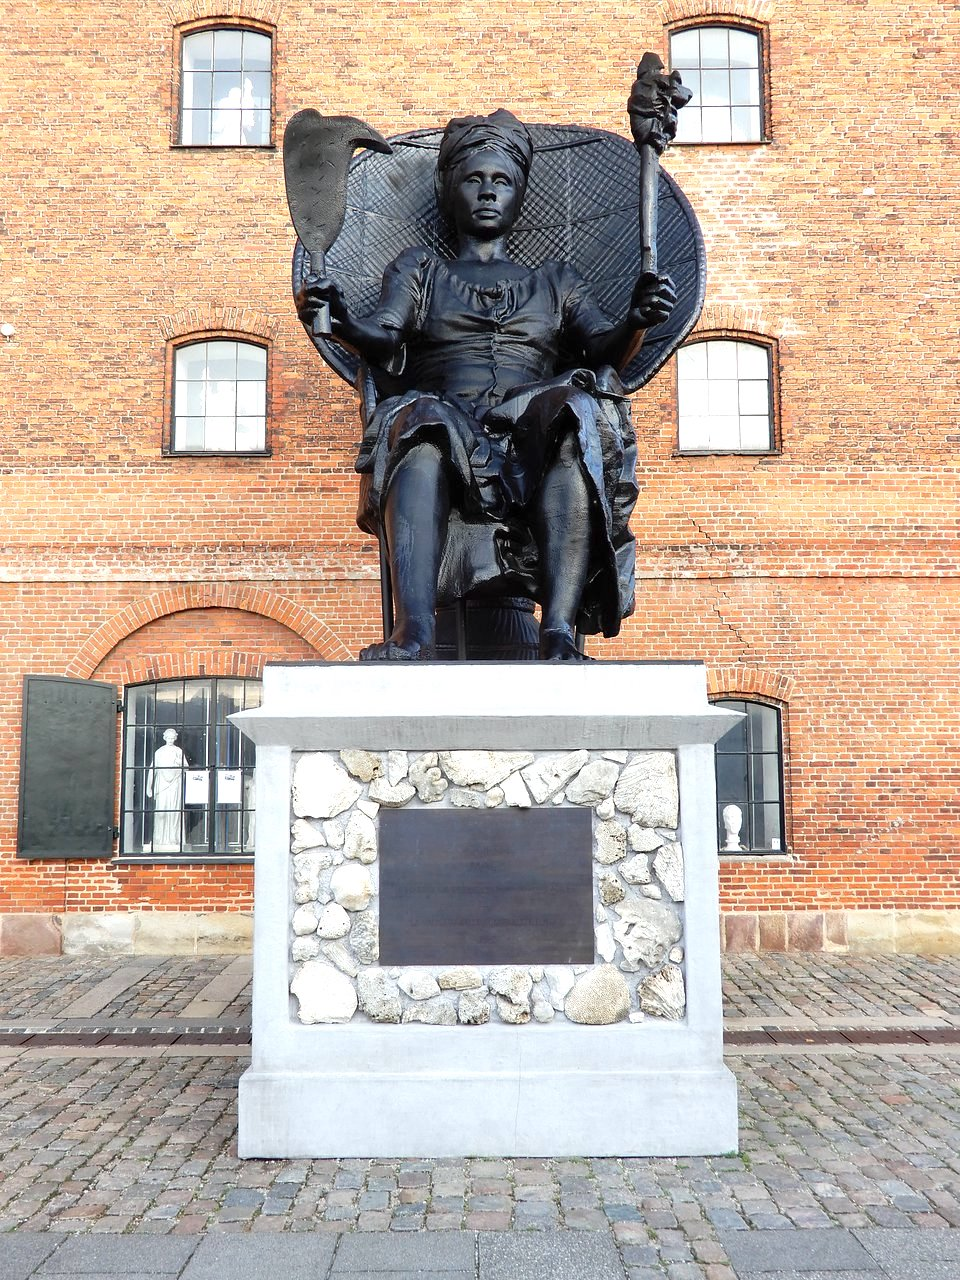 """I Am Queen Mary"" statue in Copenhagen pays tribute to Mary Thomas, who led the 1878 ""Fireburn"" revolt, which resulted in mass destruction in the former Danish colony of St. Croix. Photo credit: Google Images"